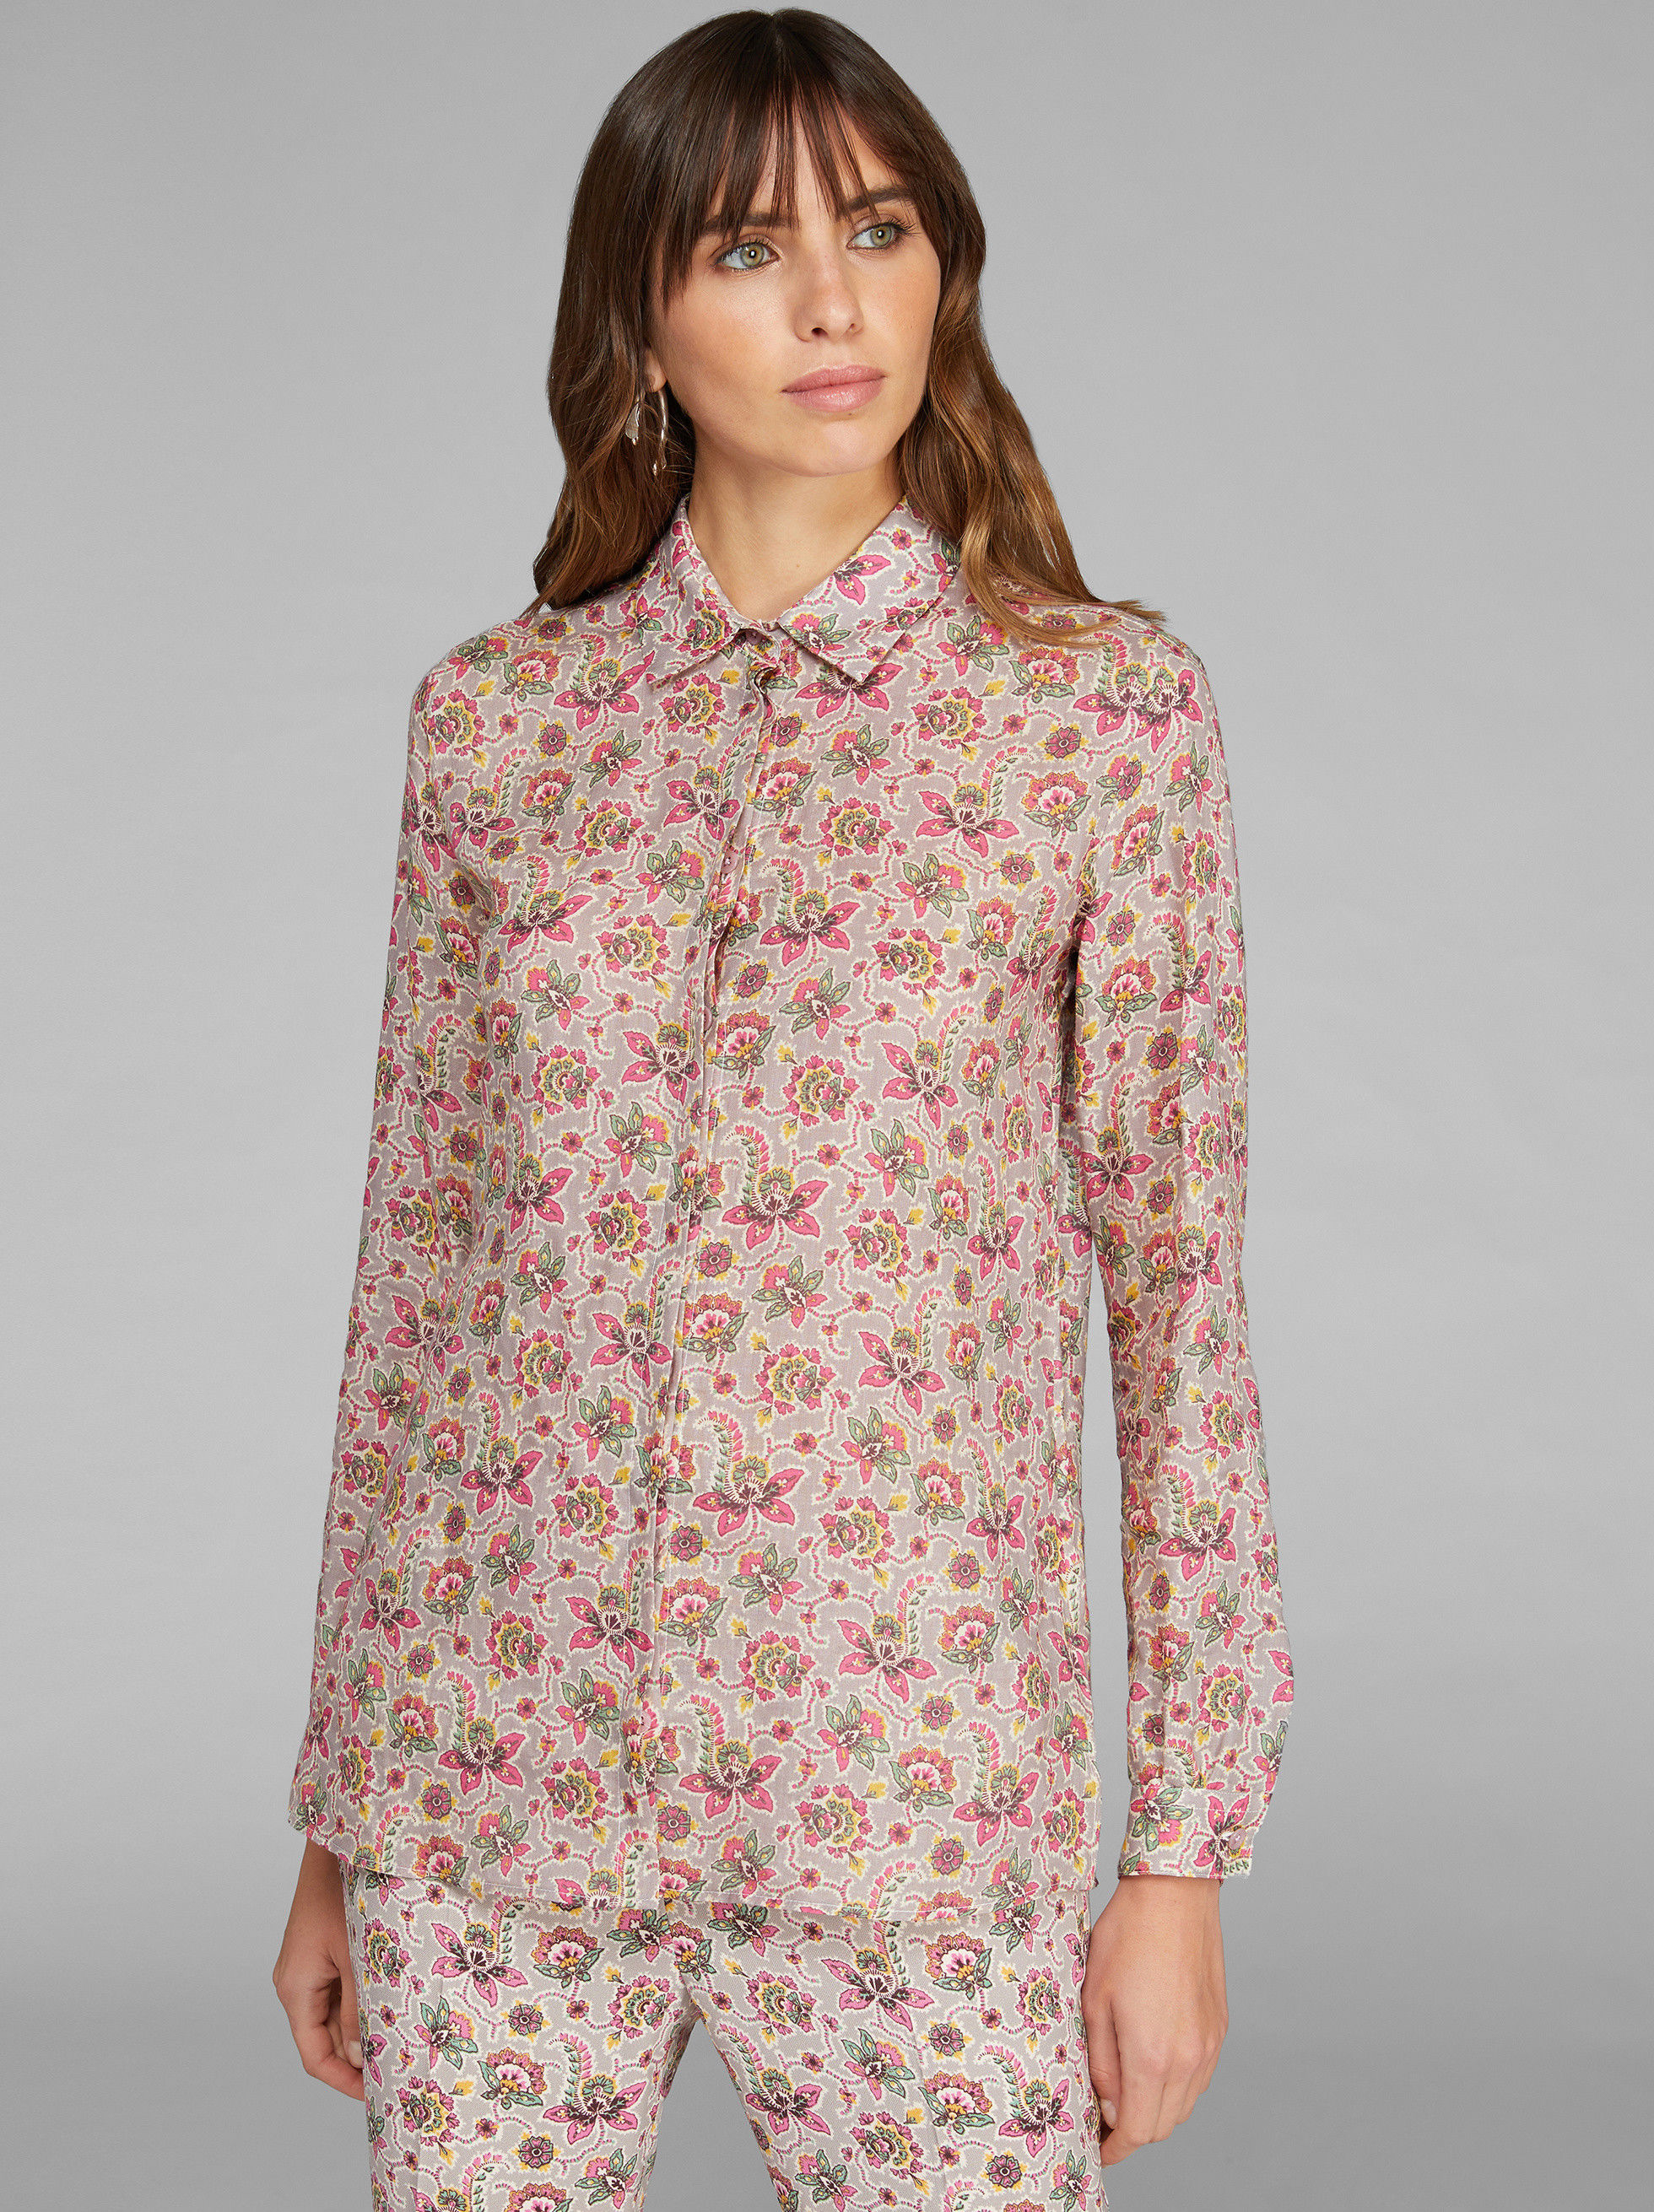 PAISLEY FLORAL PATTERN SHIRT